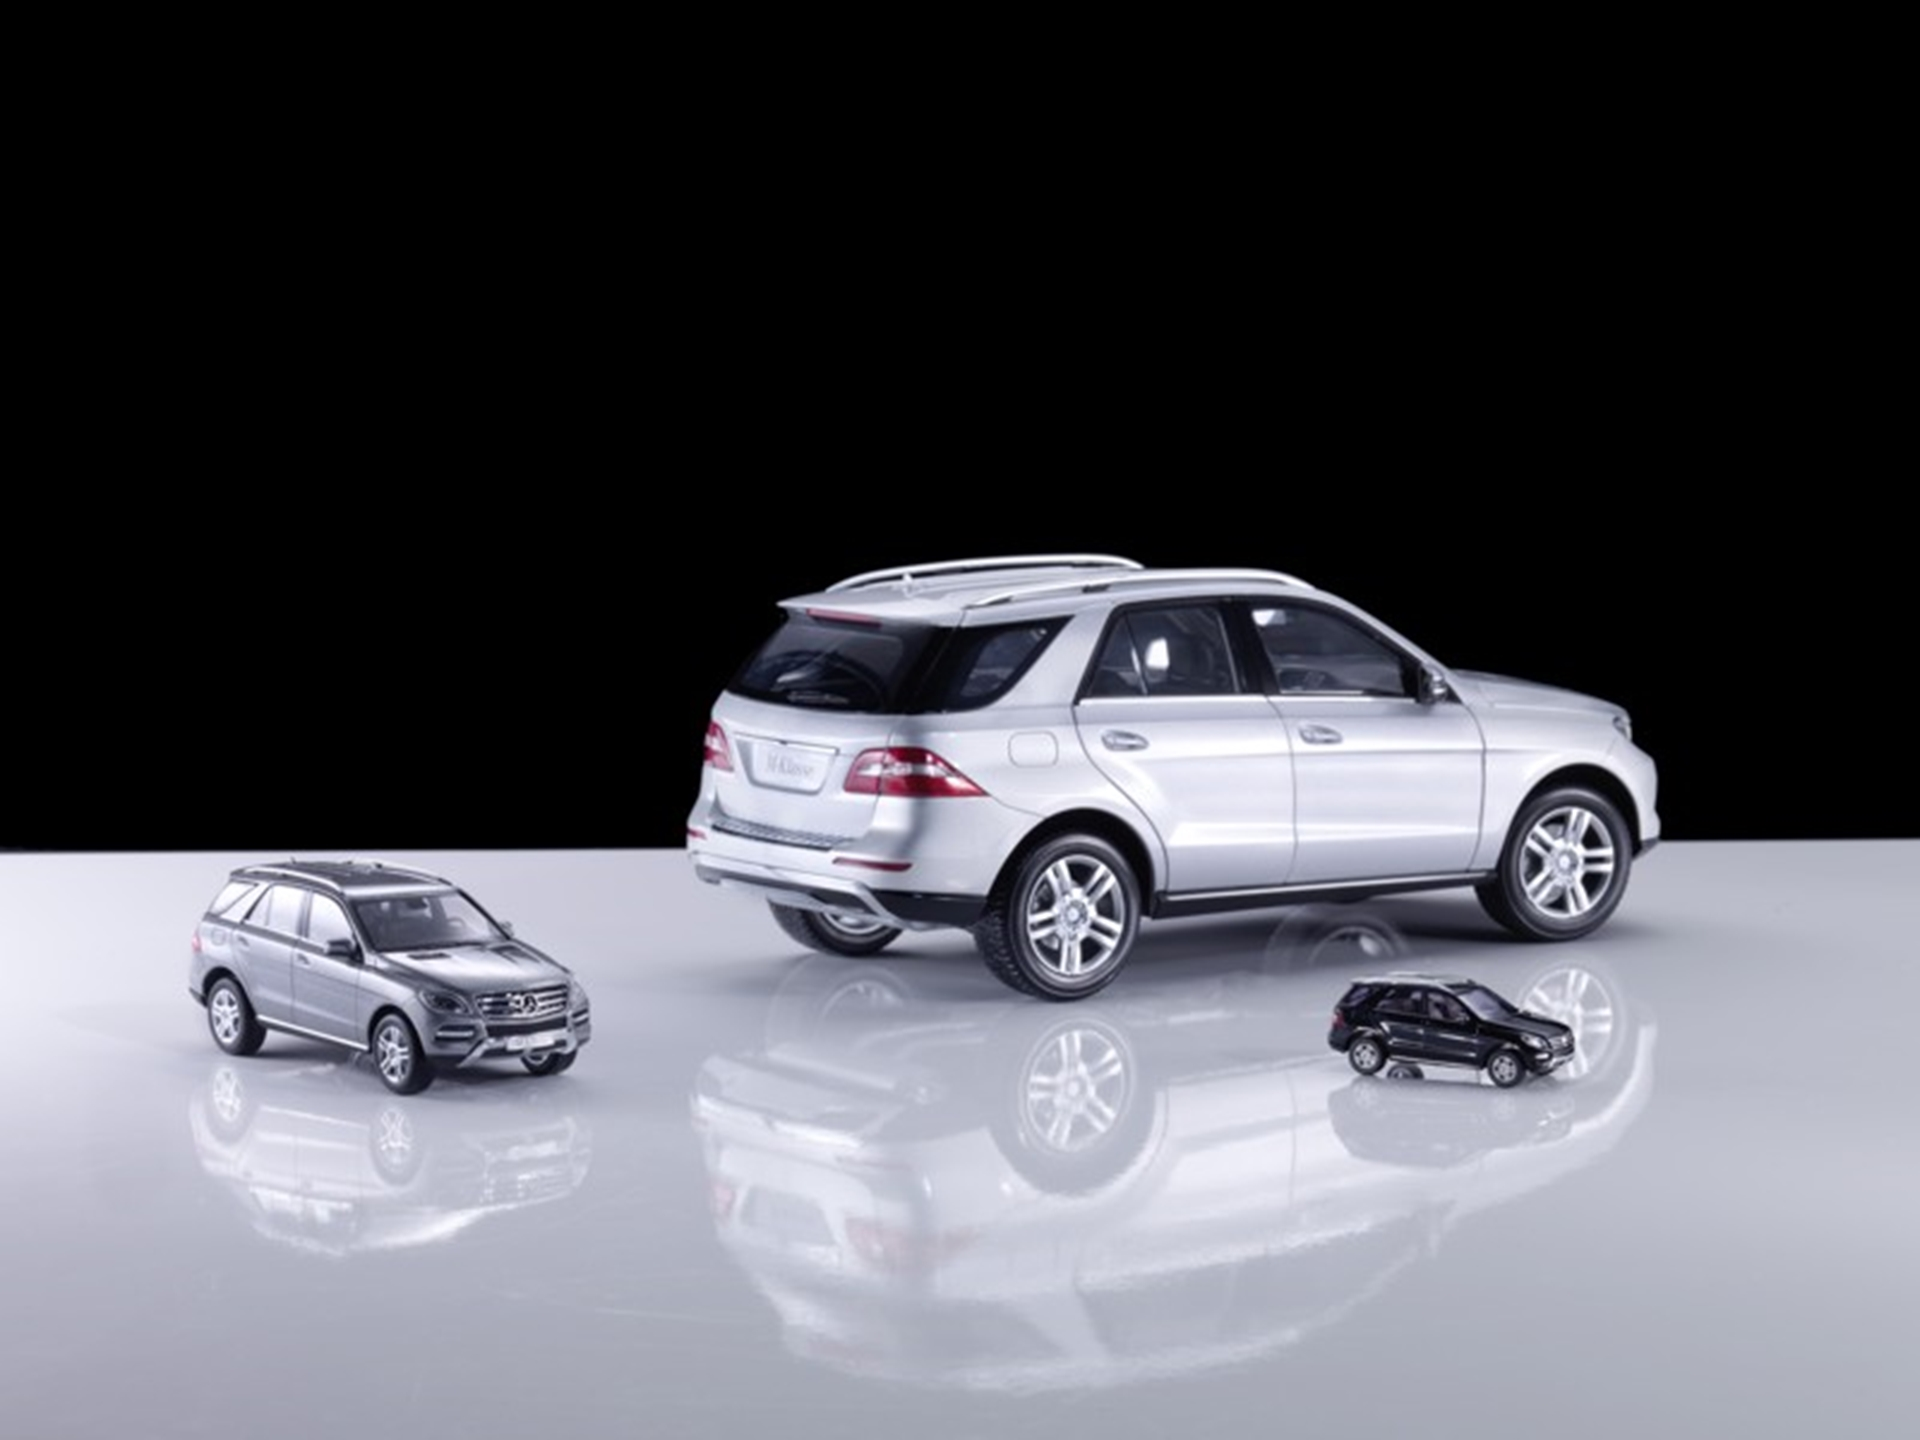 The new mercedes benz m class and b class in model form for New mercedes benz m class